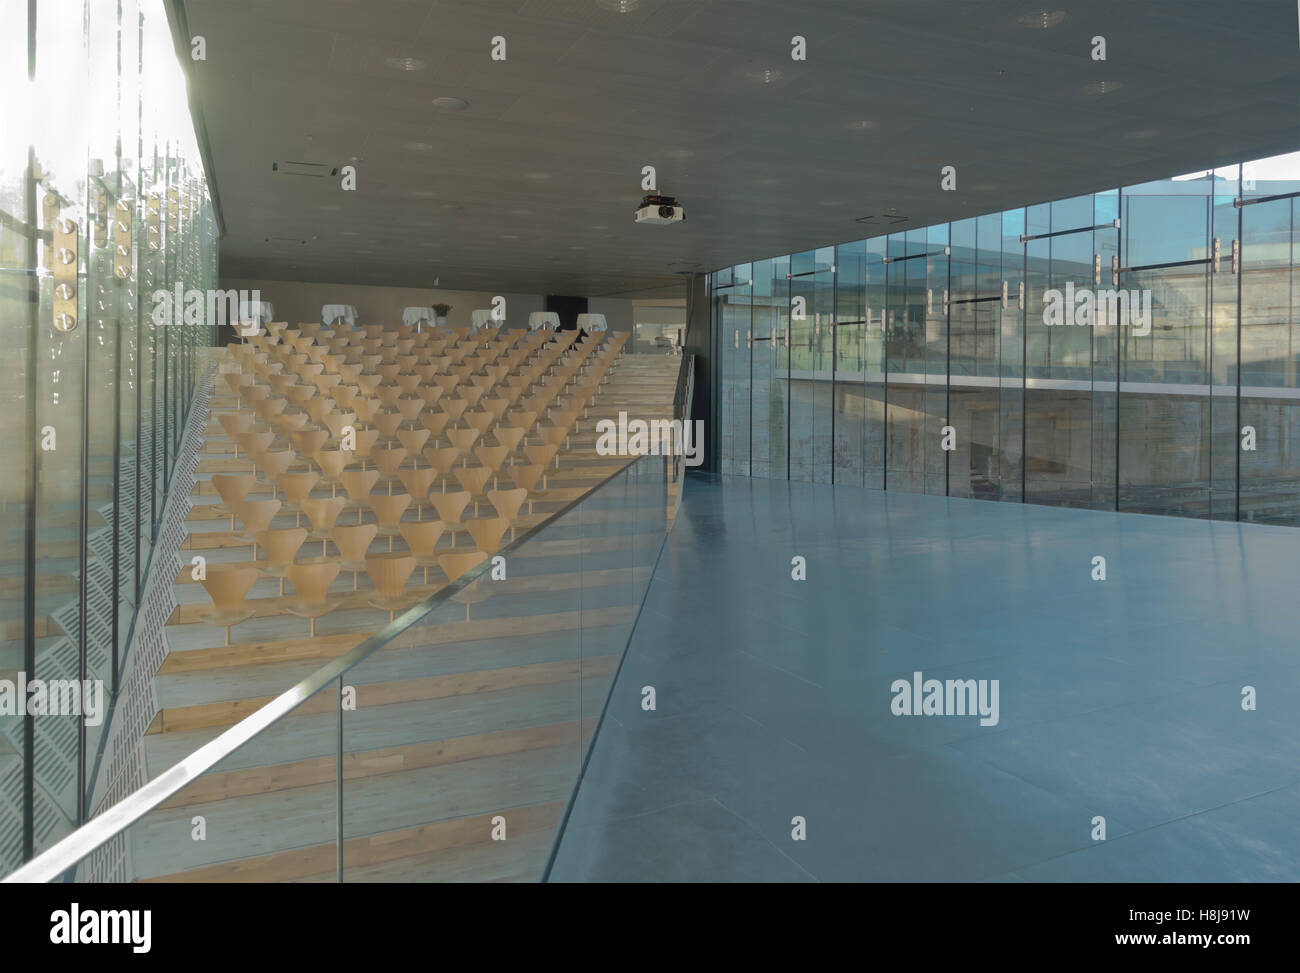 Lecture theatre in the Danish Maritime Museum, M/S Museet for Søfart, in Helsingør Denmark. Architect - Stock Image